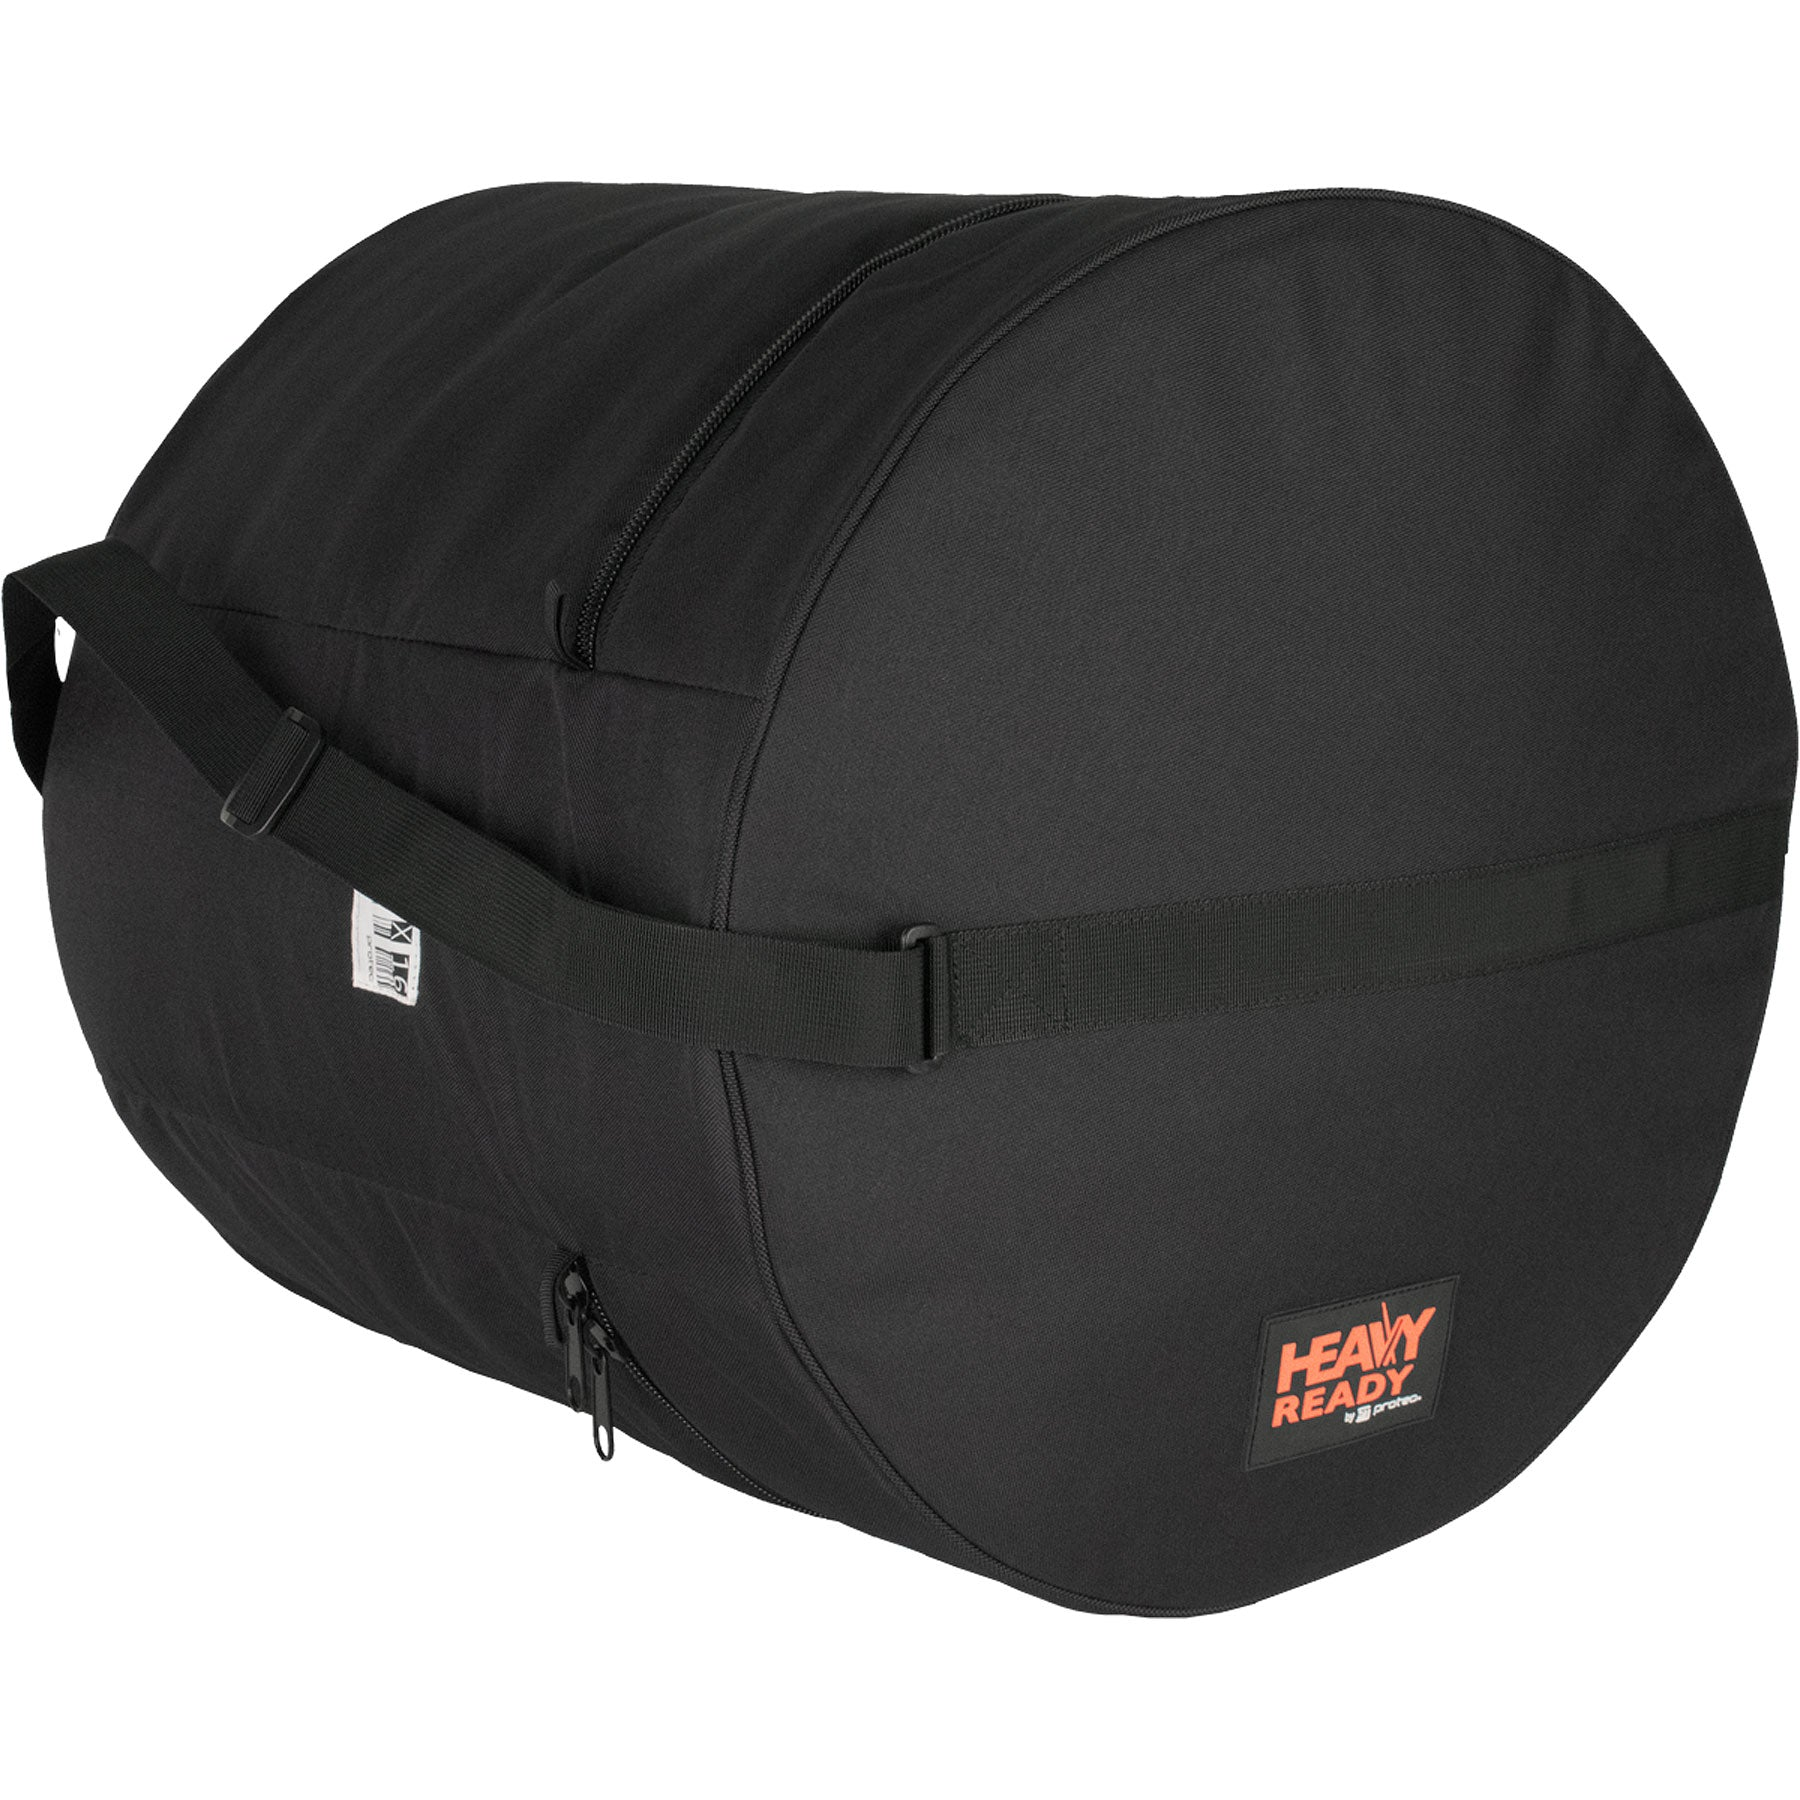 PROTEC Heavy Ready Padded Floor & Kick Bag 18x16